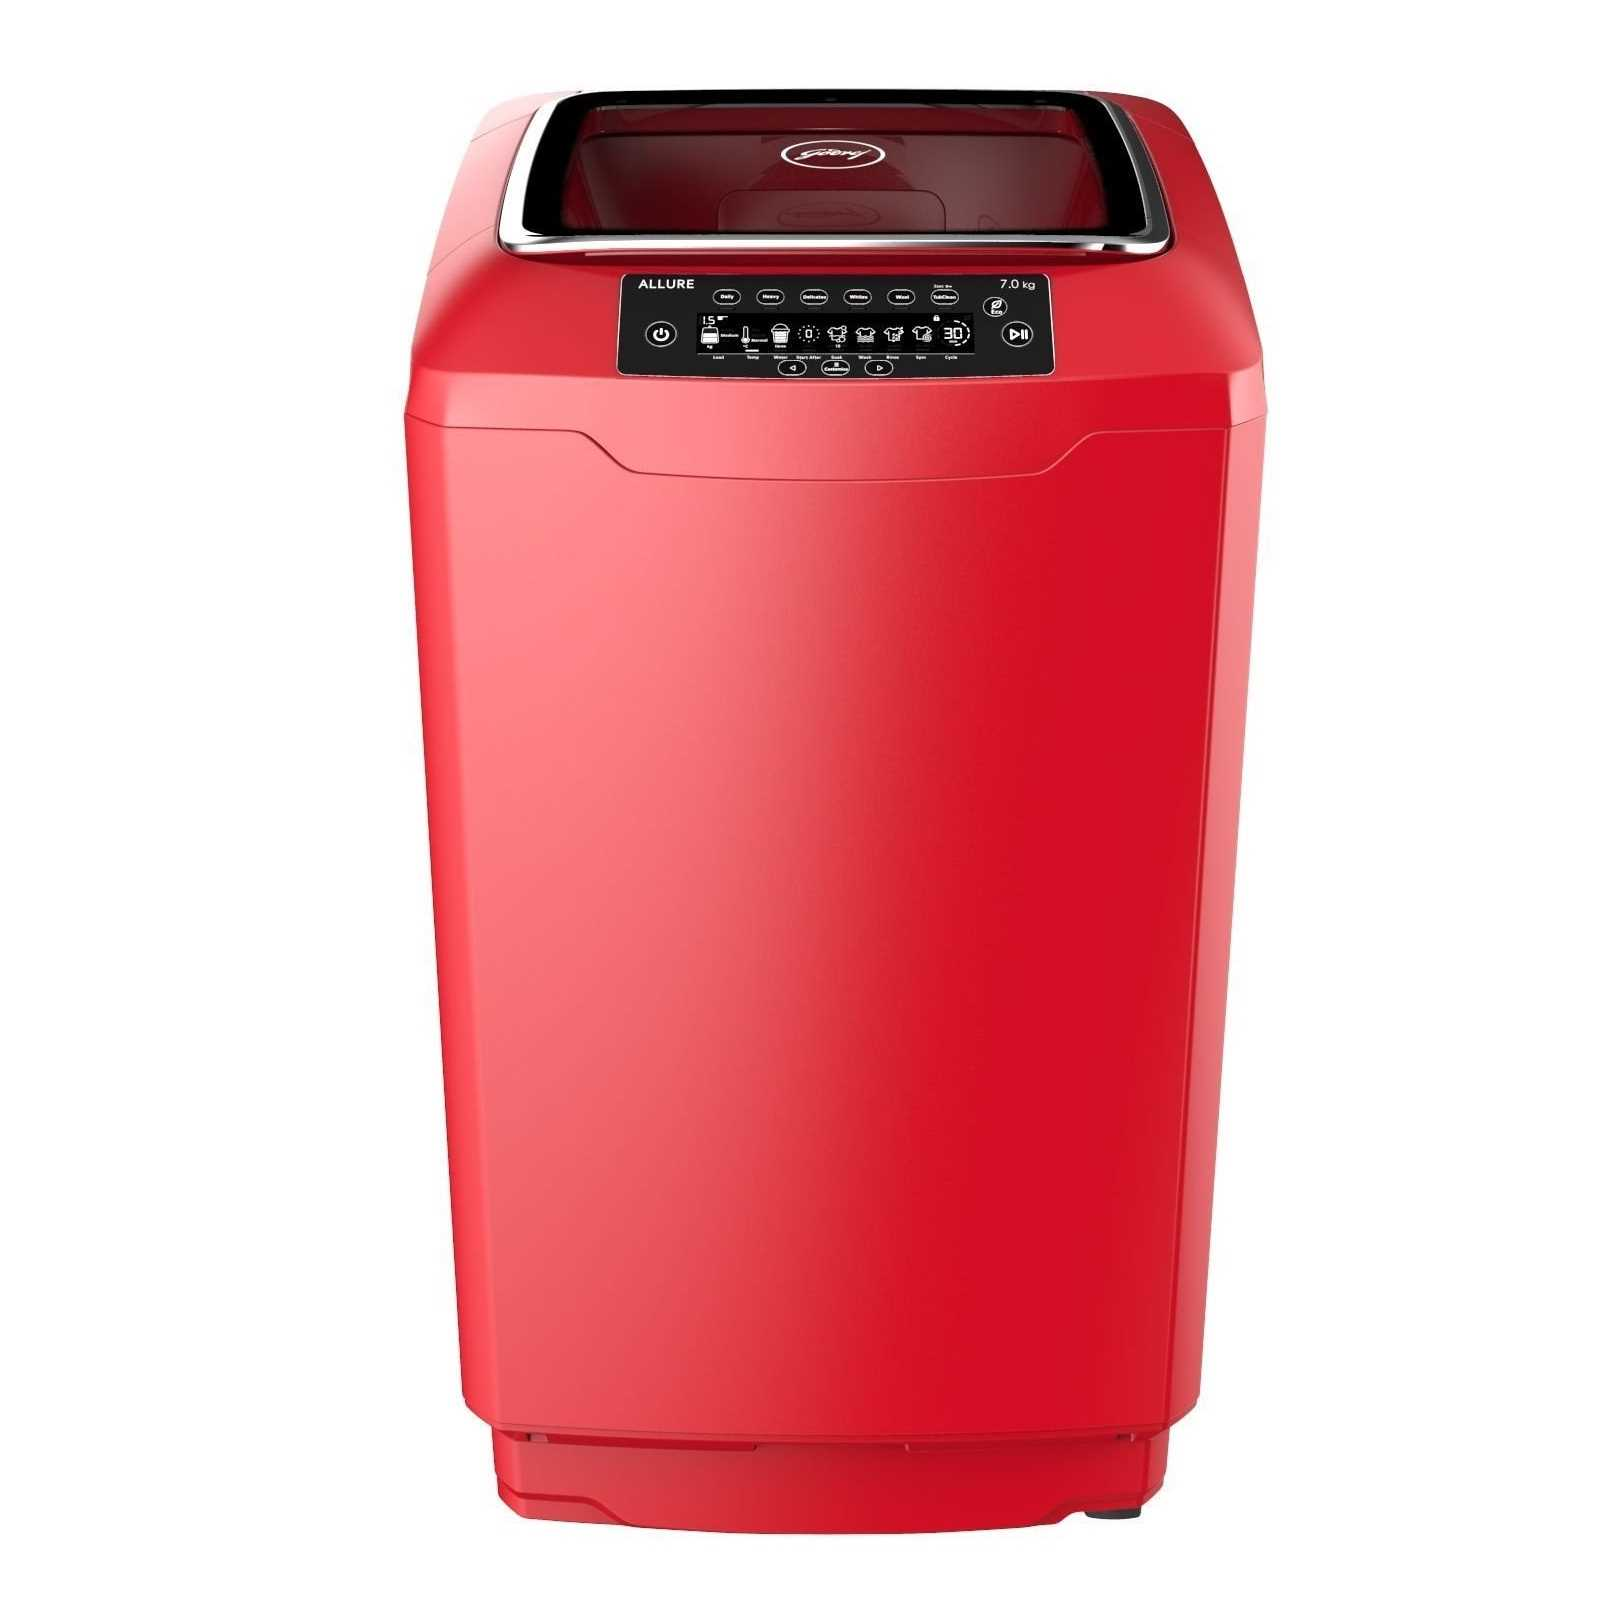 Godrej WT EON ALLURE 700 PAHMP 7 Kg Fully Automatic Top Load Washing Machine